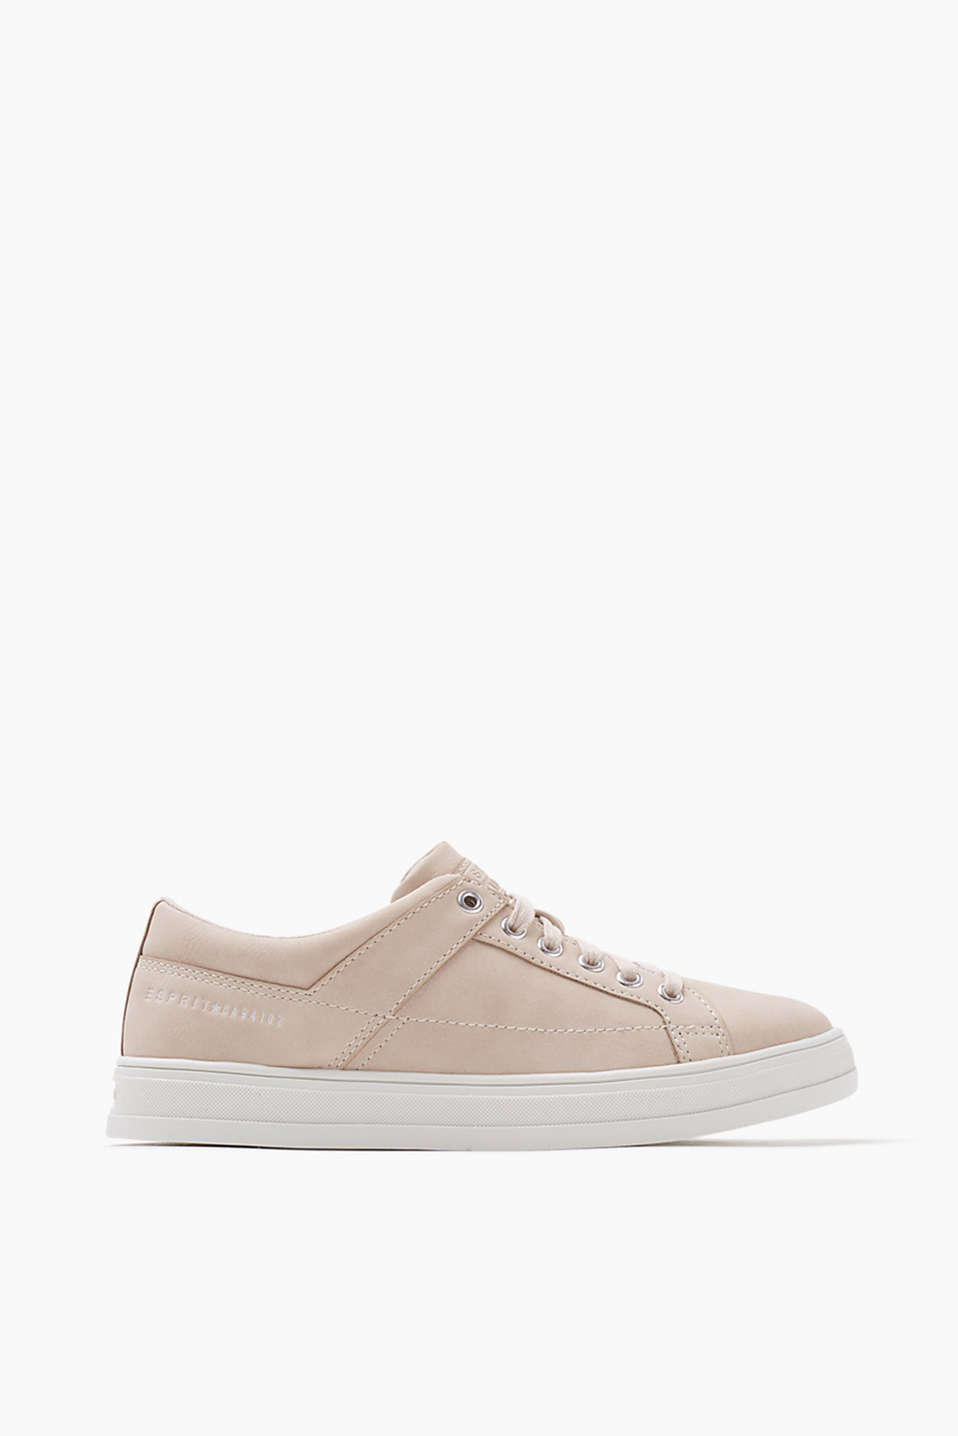 Lace-up trainers in soft imitation suede with a rubber outsole